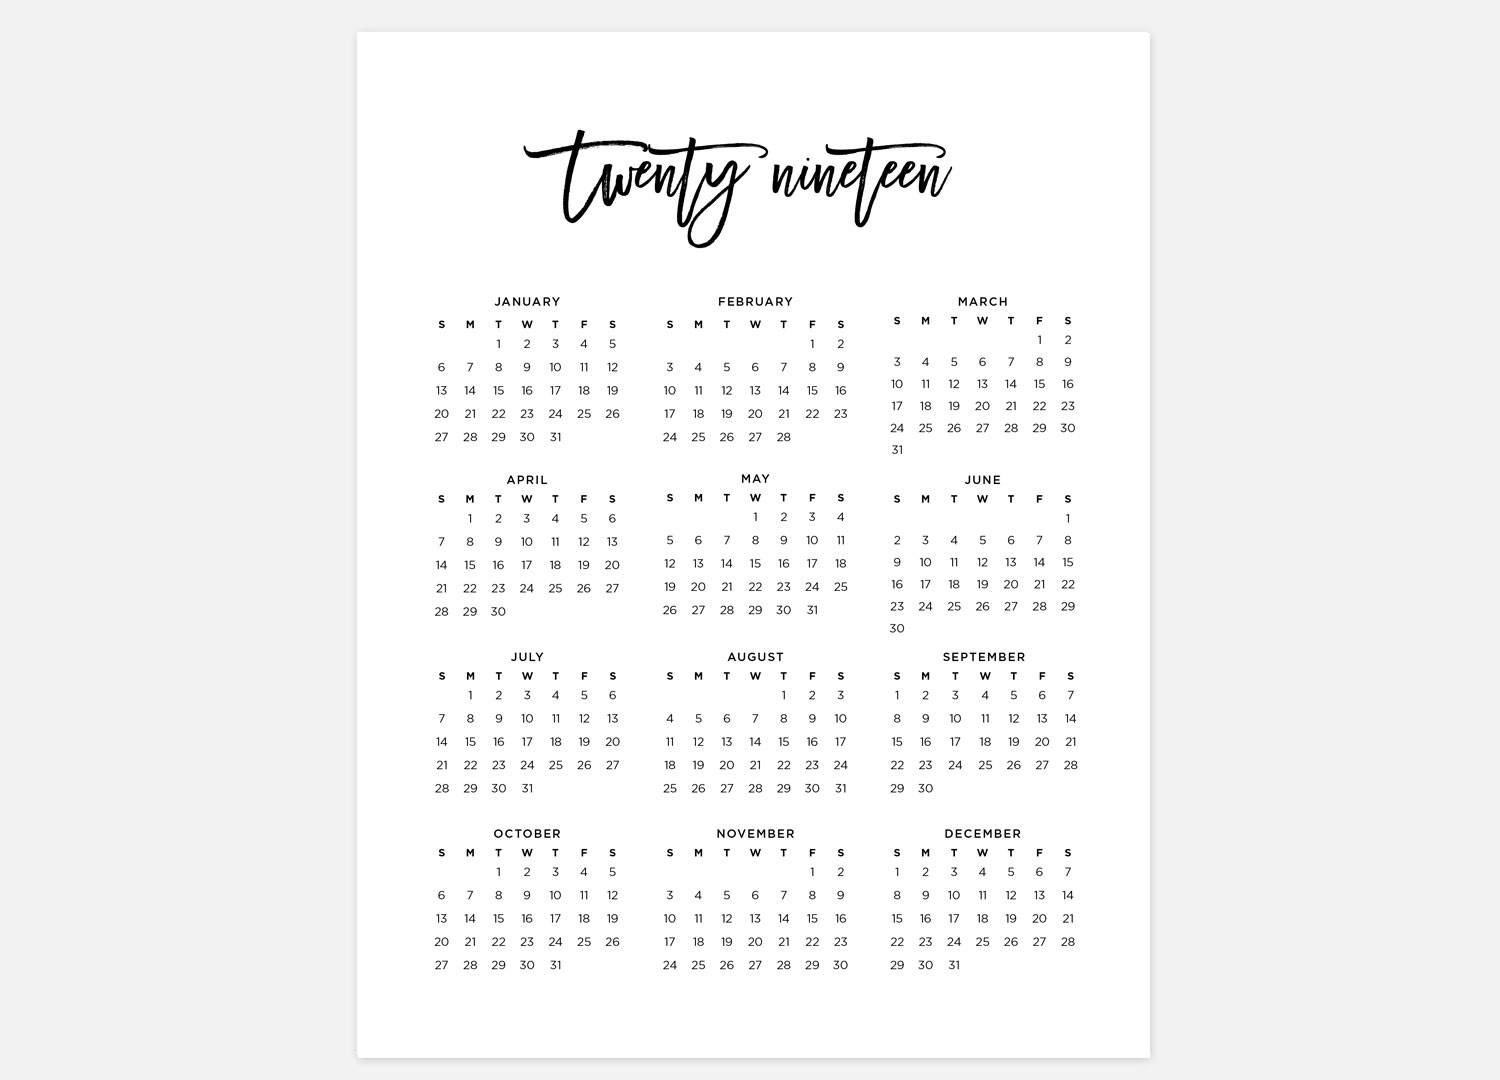 2019 Calendar Simple Calendar 2019 Year Calendar 2019 | Etsy At A Glance Calendar 2019